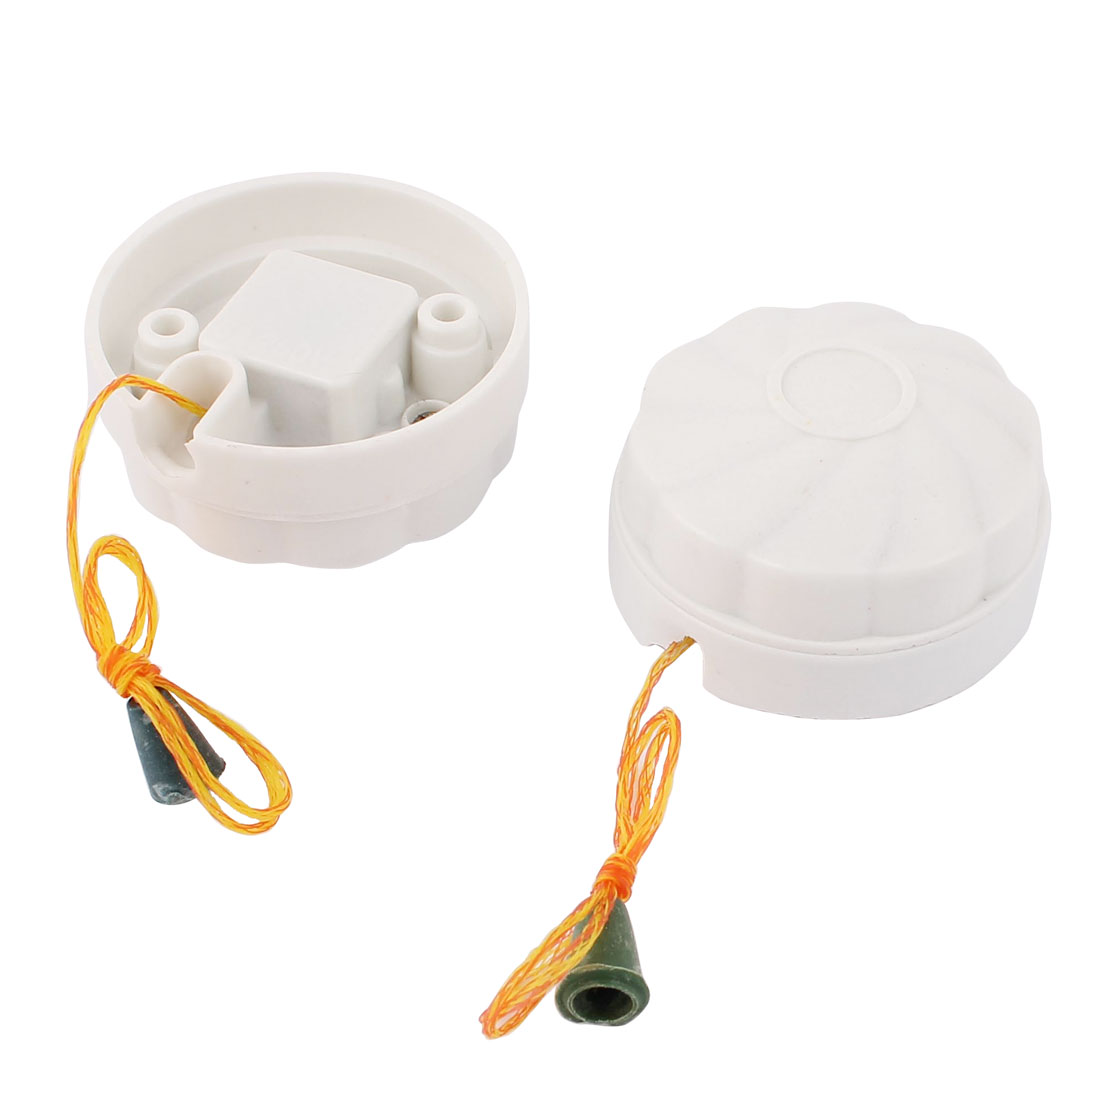 AC 250V 6A Bathroom Ceiling Light Plastic Pull Cord Switch White 2pcs